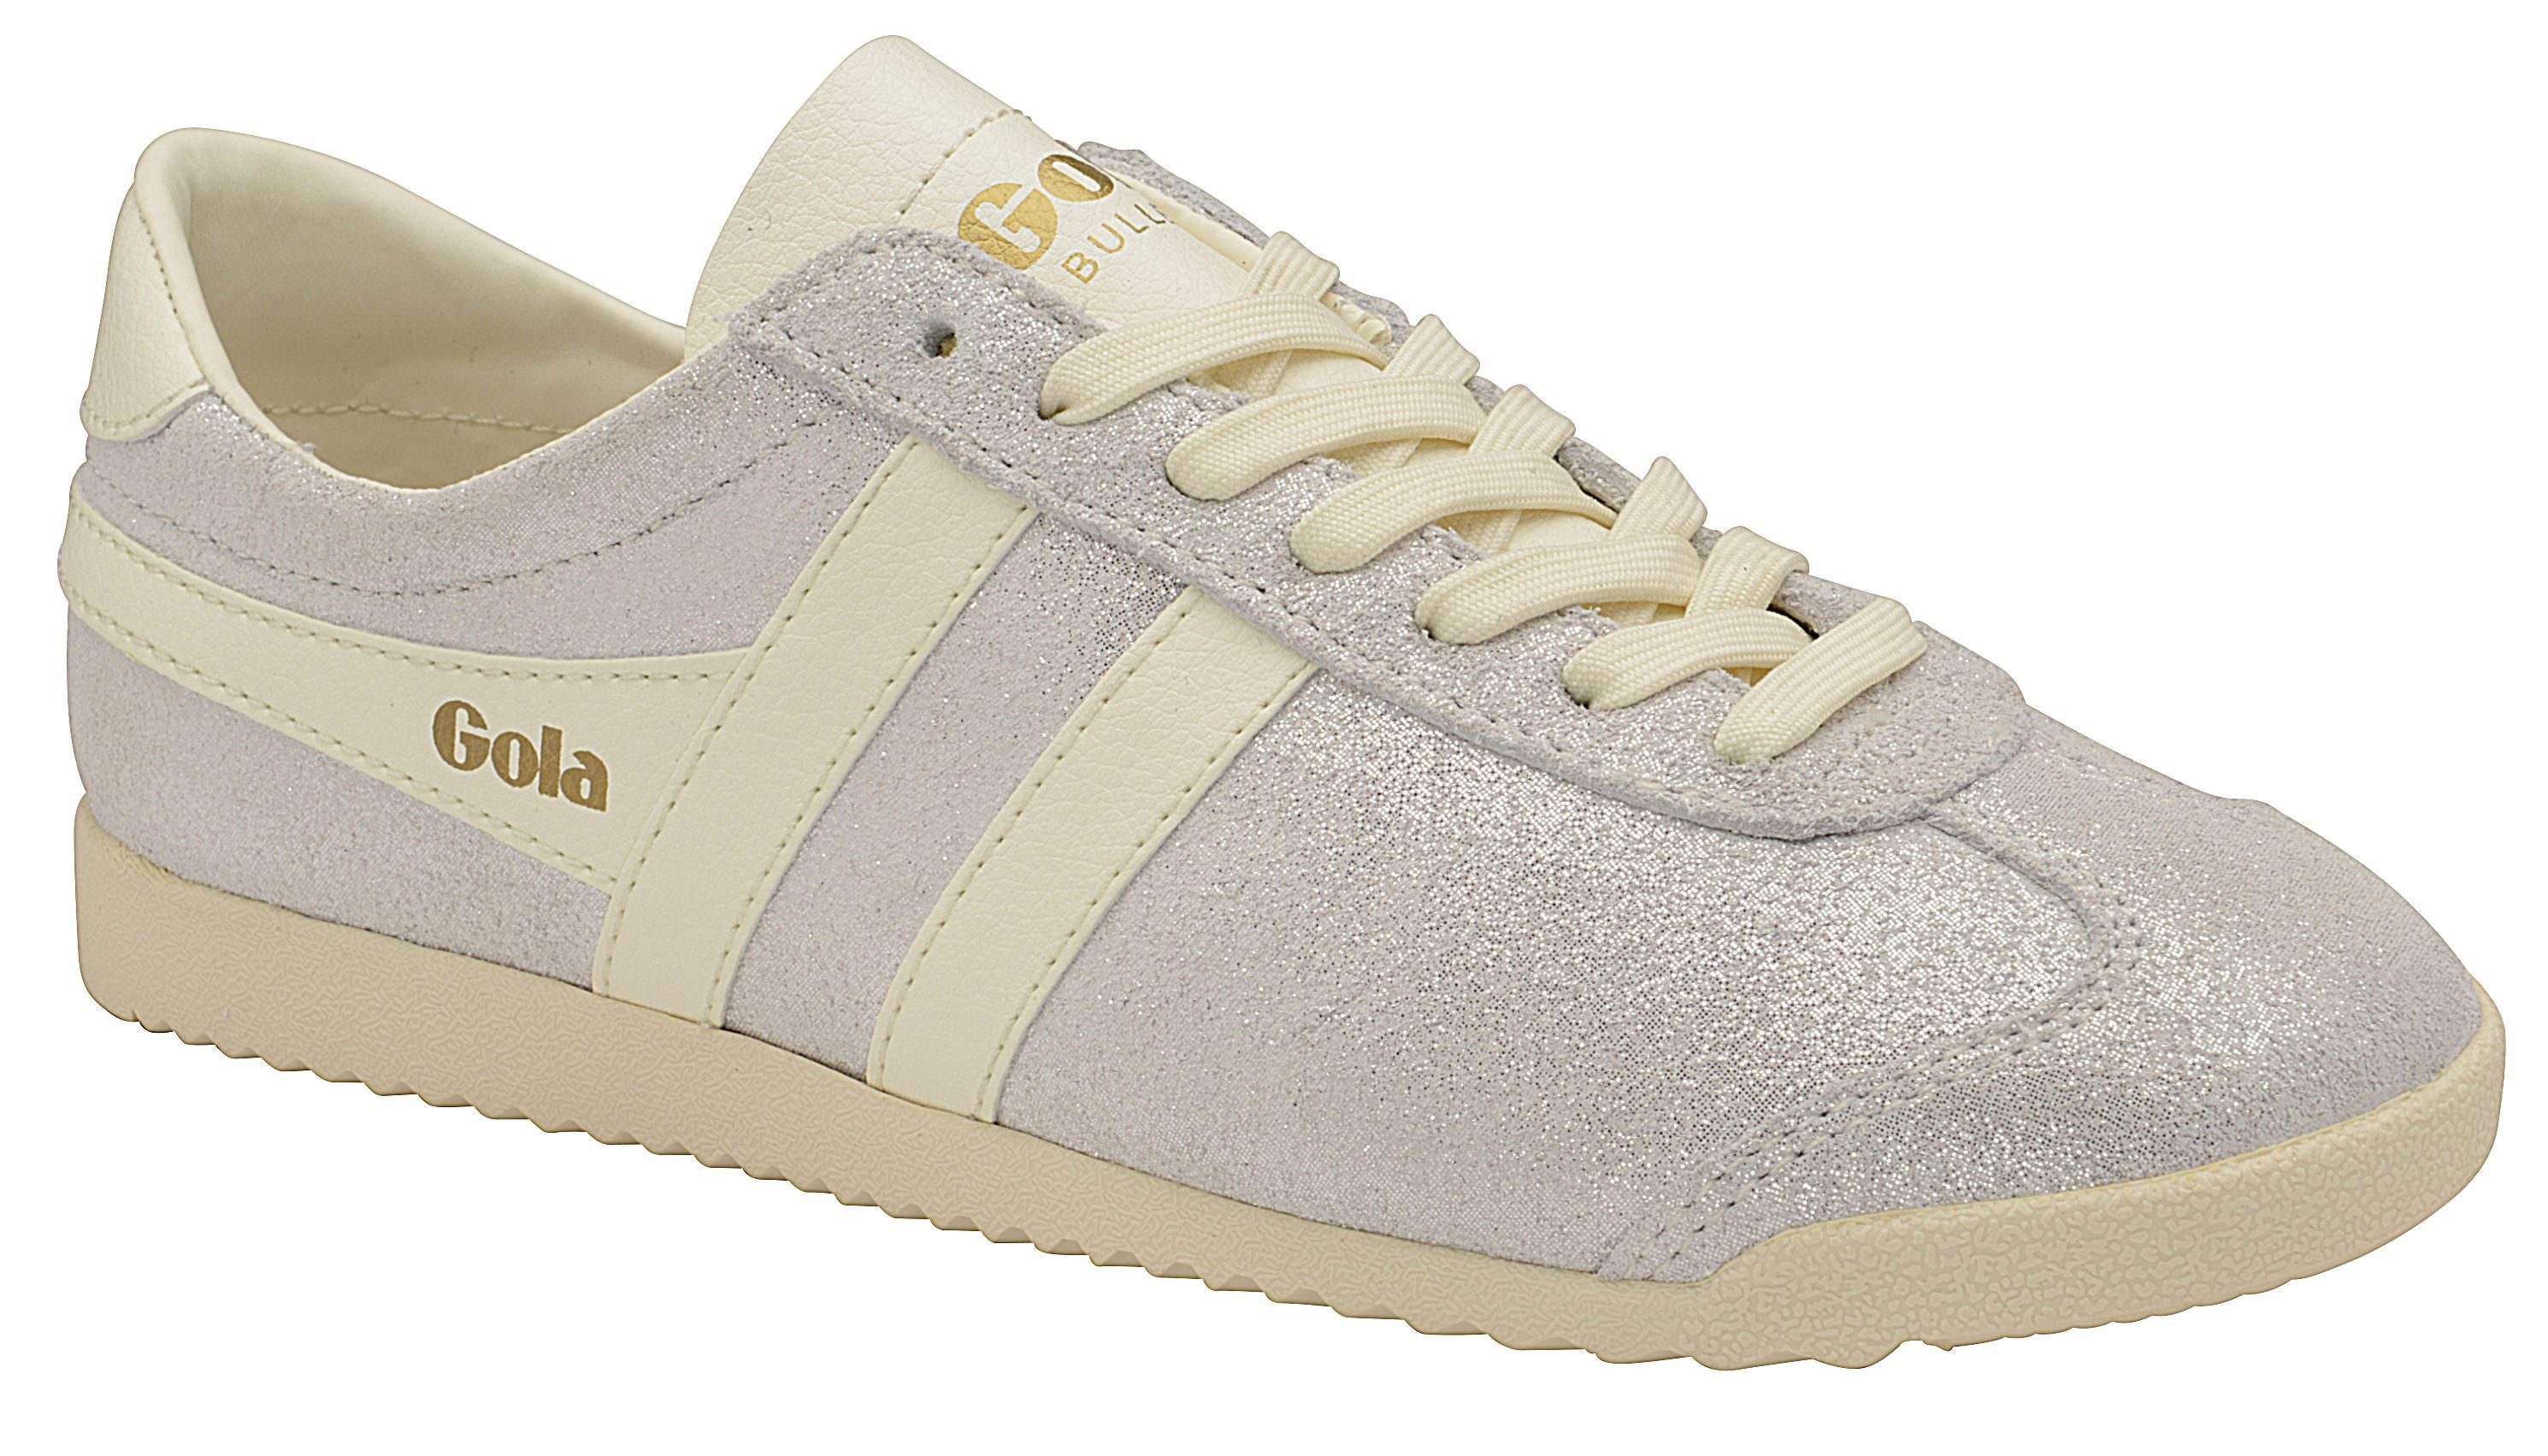 Gola Bullet Glitter Lace Up Trainers, Off White